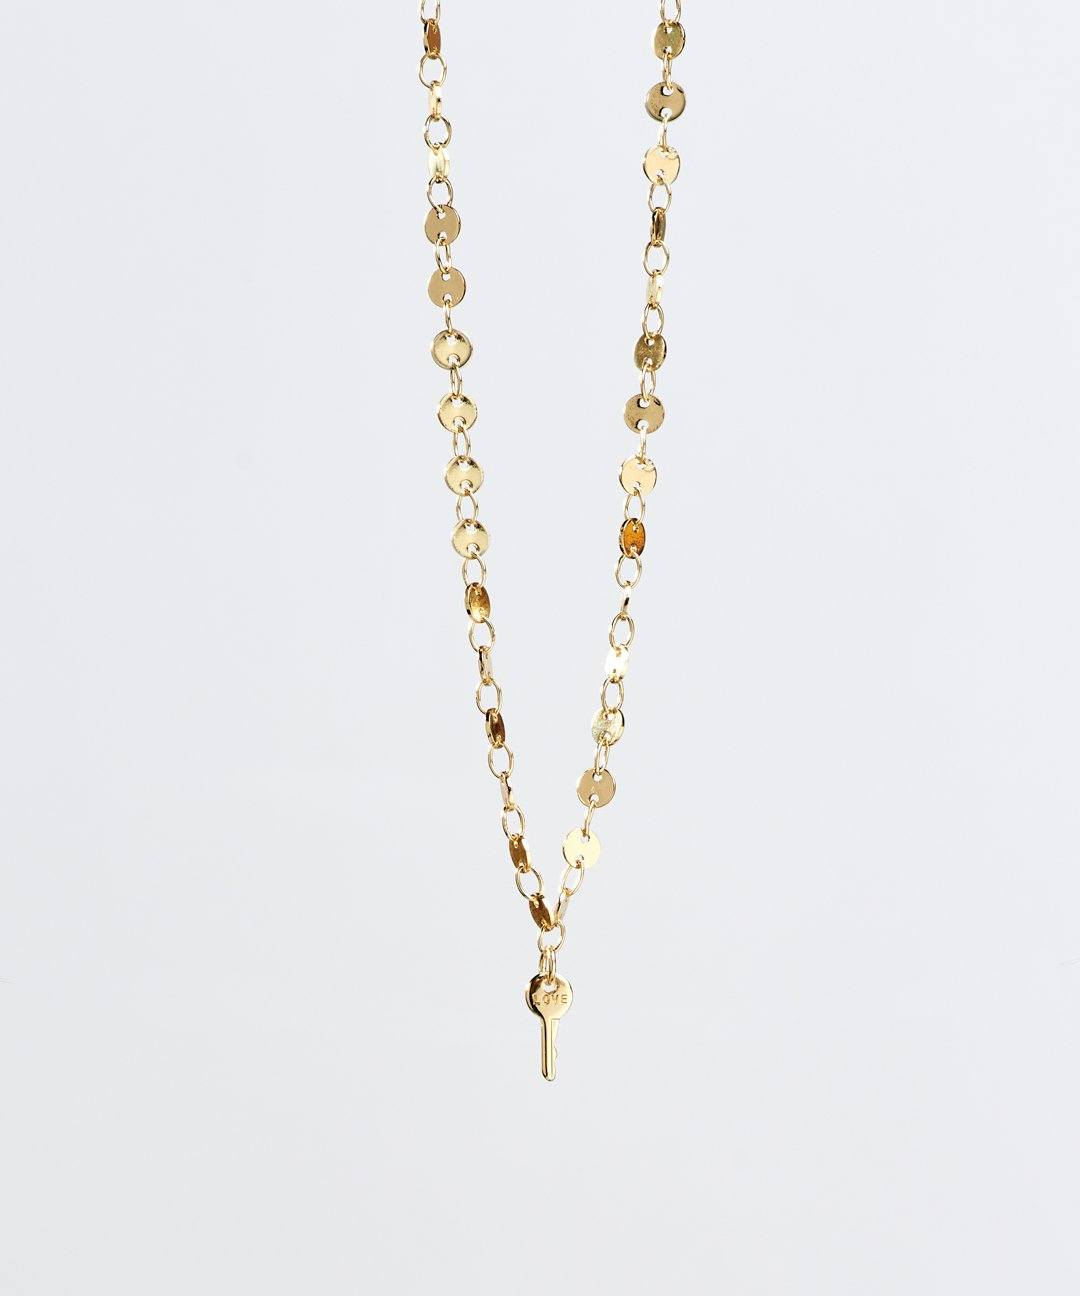 Barcelona Mini Key Necklace Necklaces The Giving Keys LOVE Gold